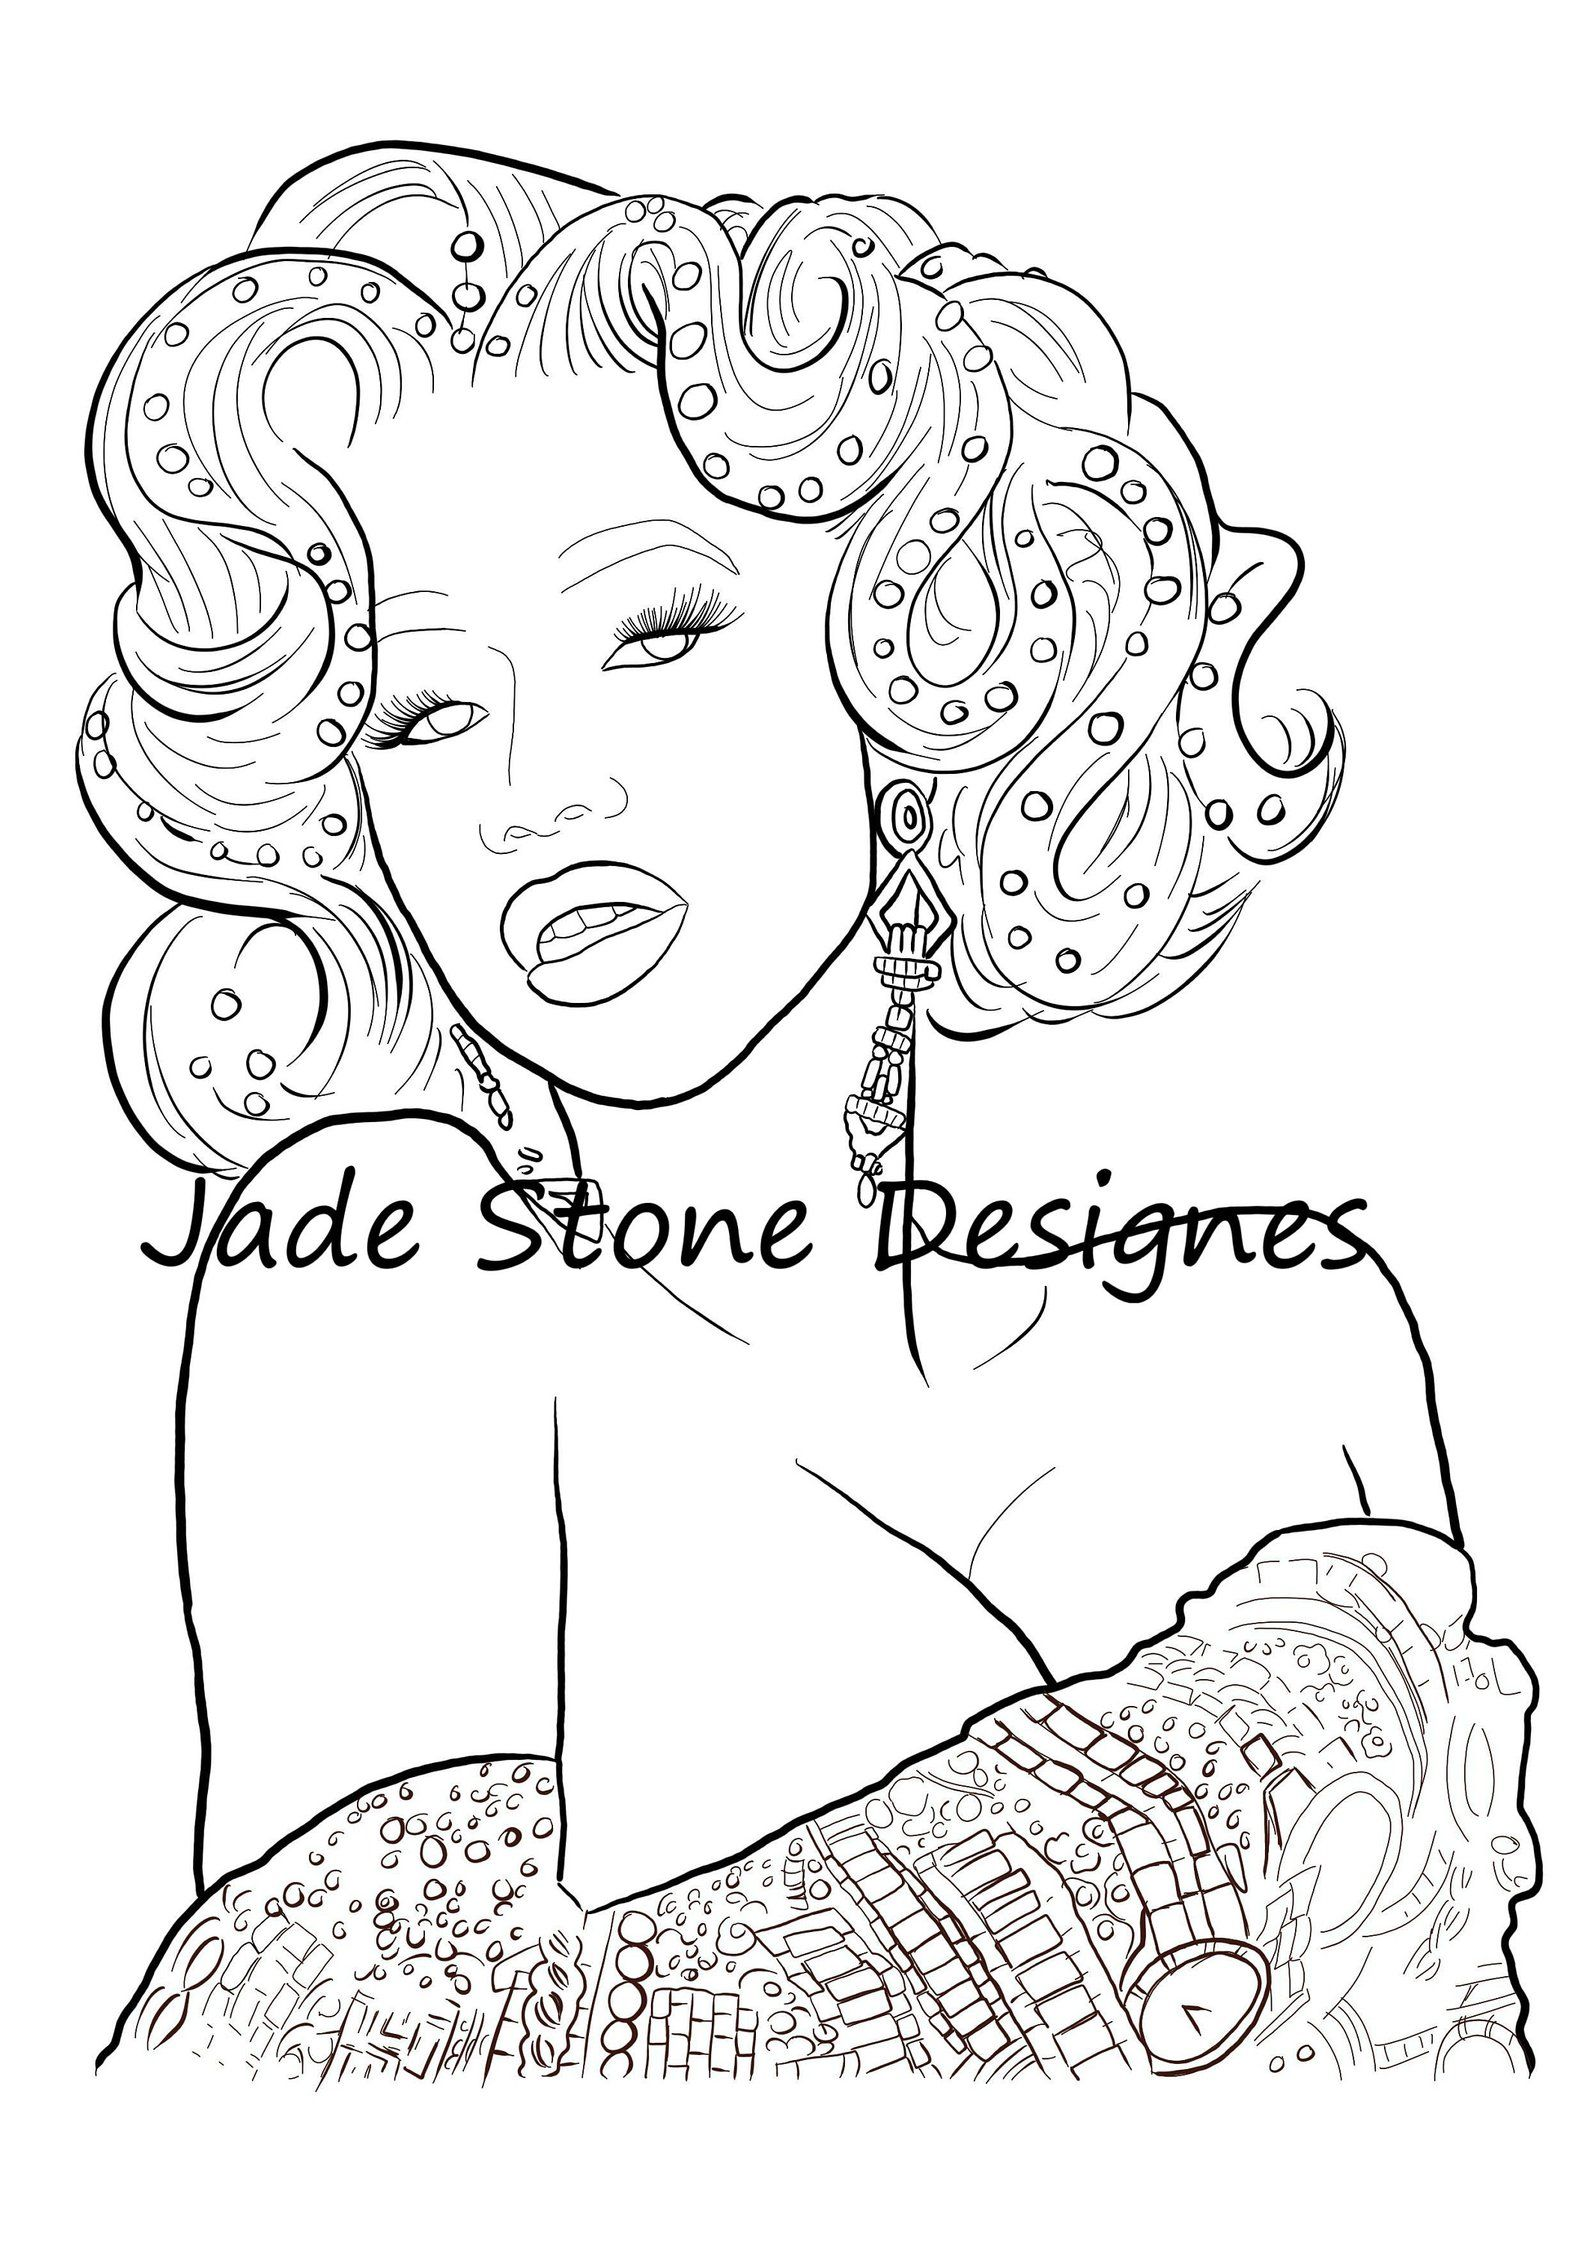 Pictures To Colour In 3 62 Different Pages To Download And Print Out Coloring Pages Free Coloring Pages Coloring Book Pages